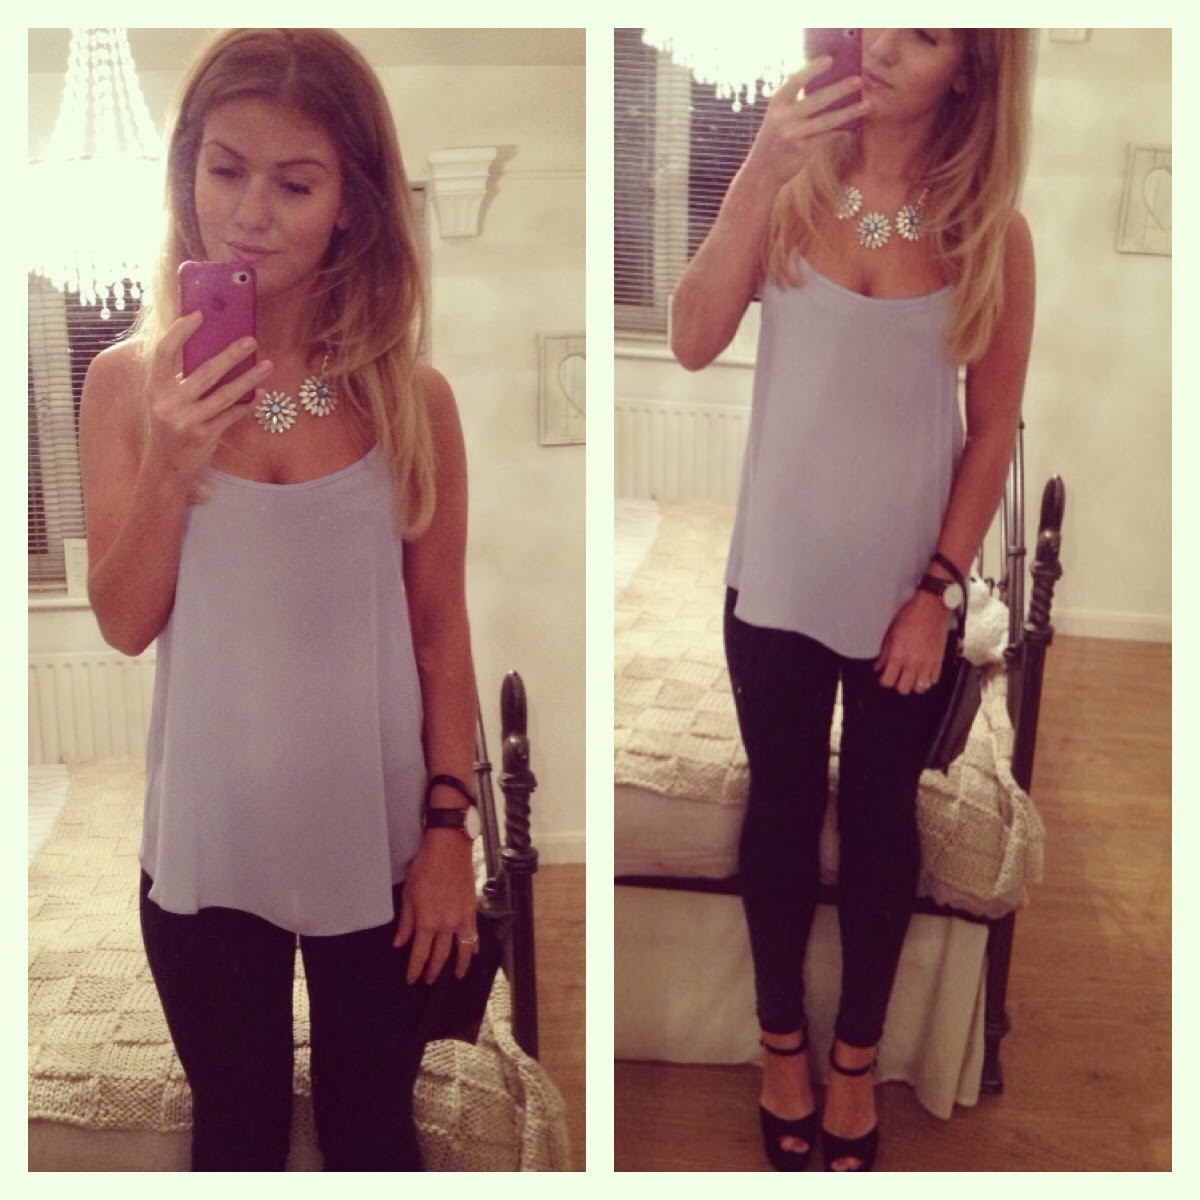 Exciting Dress: Cute House Party Outfits Tumblr